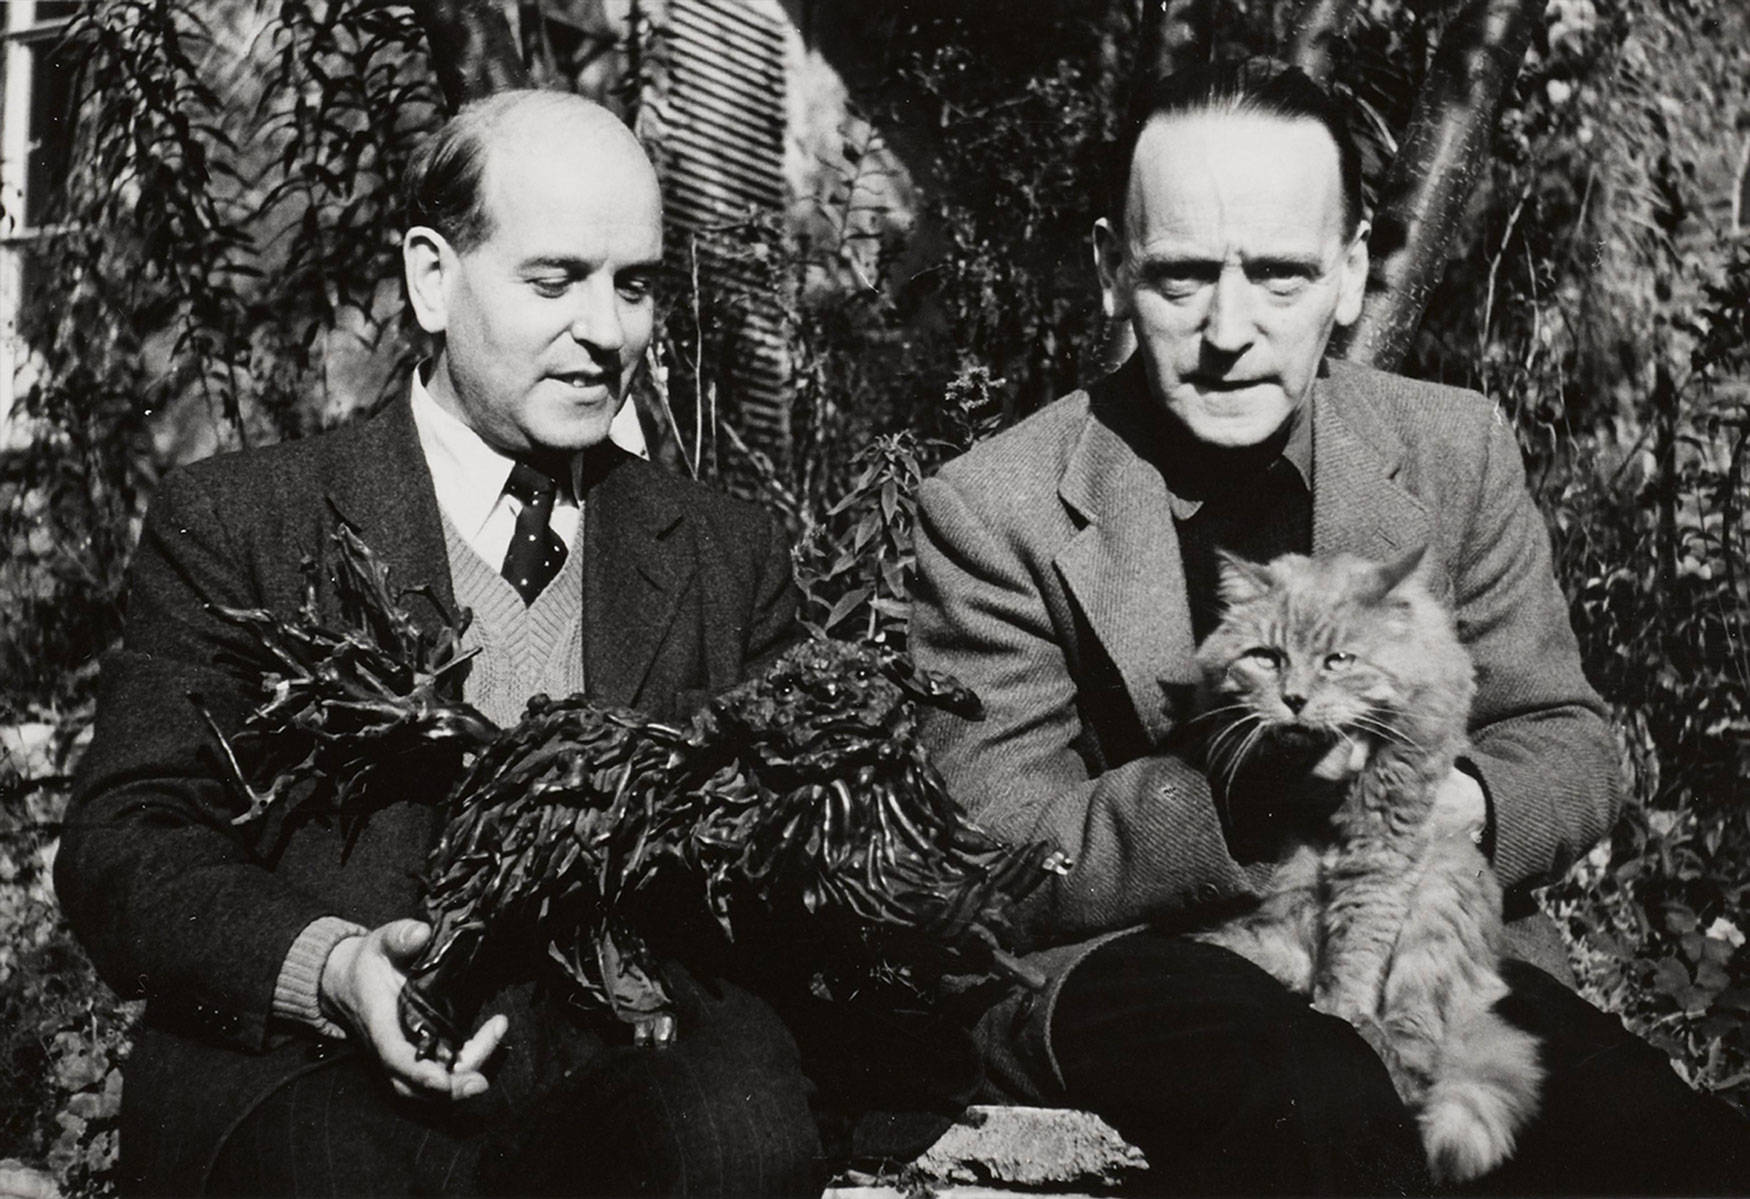 Wieland Herzfelde and John Heartfield with the chinese tea root lion, 1951